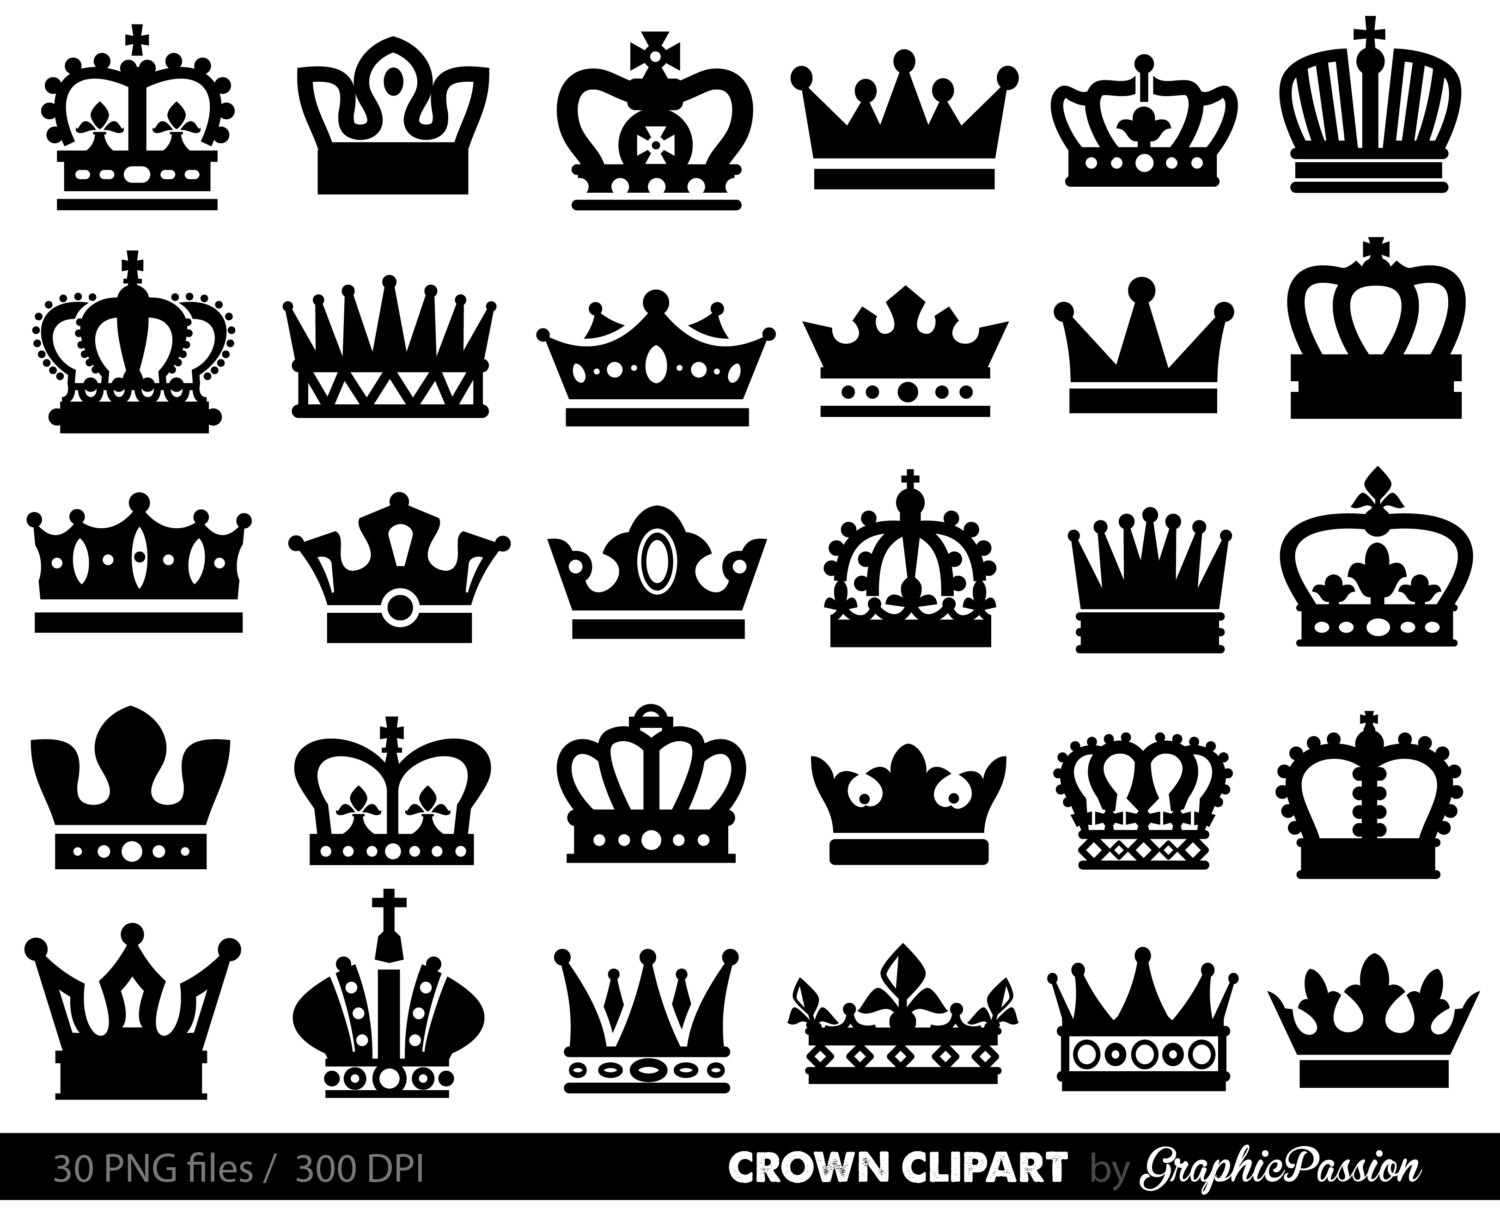 King and queen crown clip art png royalty free library King and queen crown clip art - ClipartFest png royalty free library